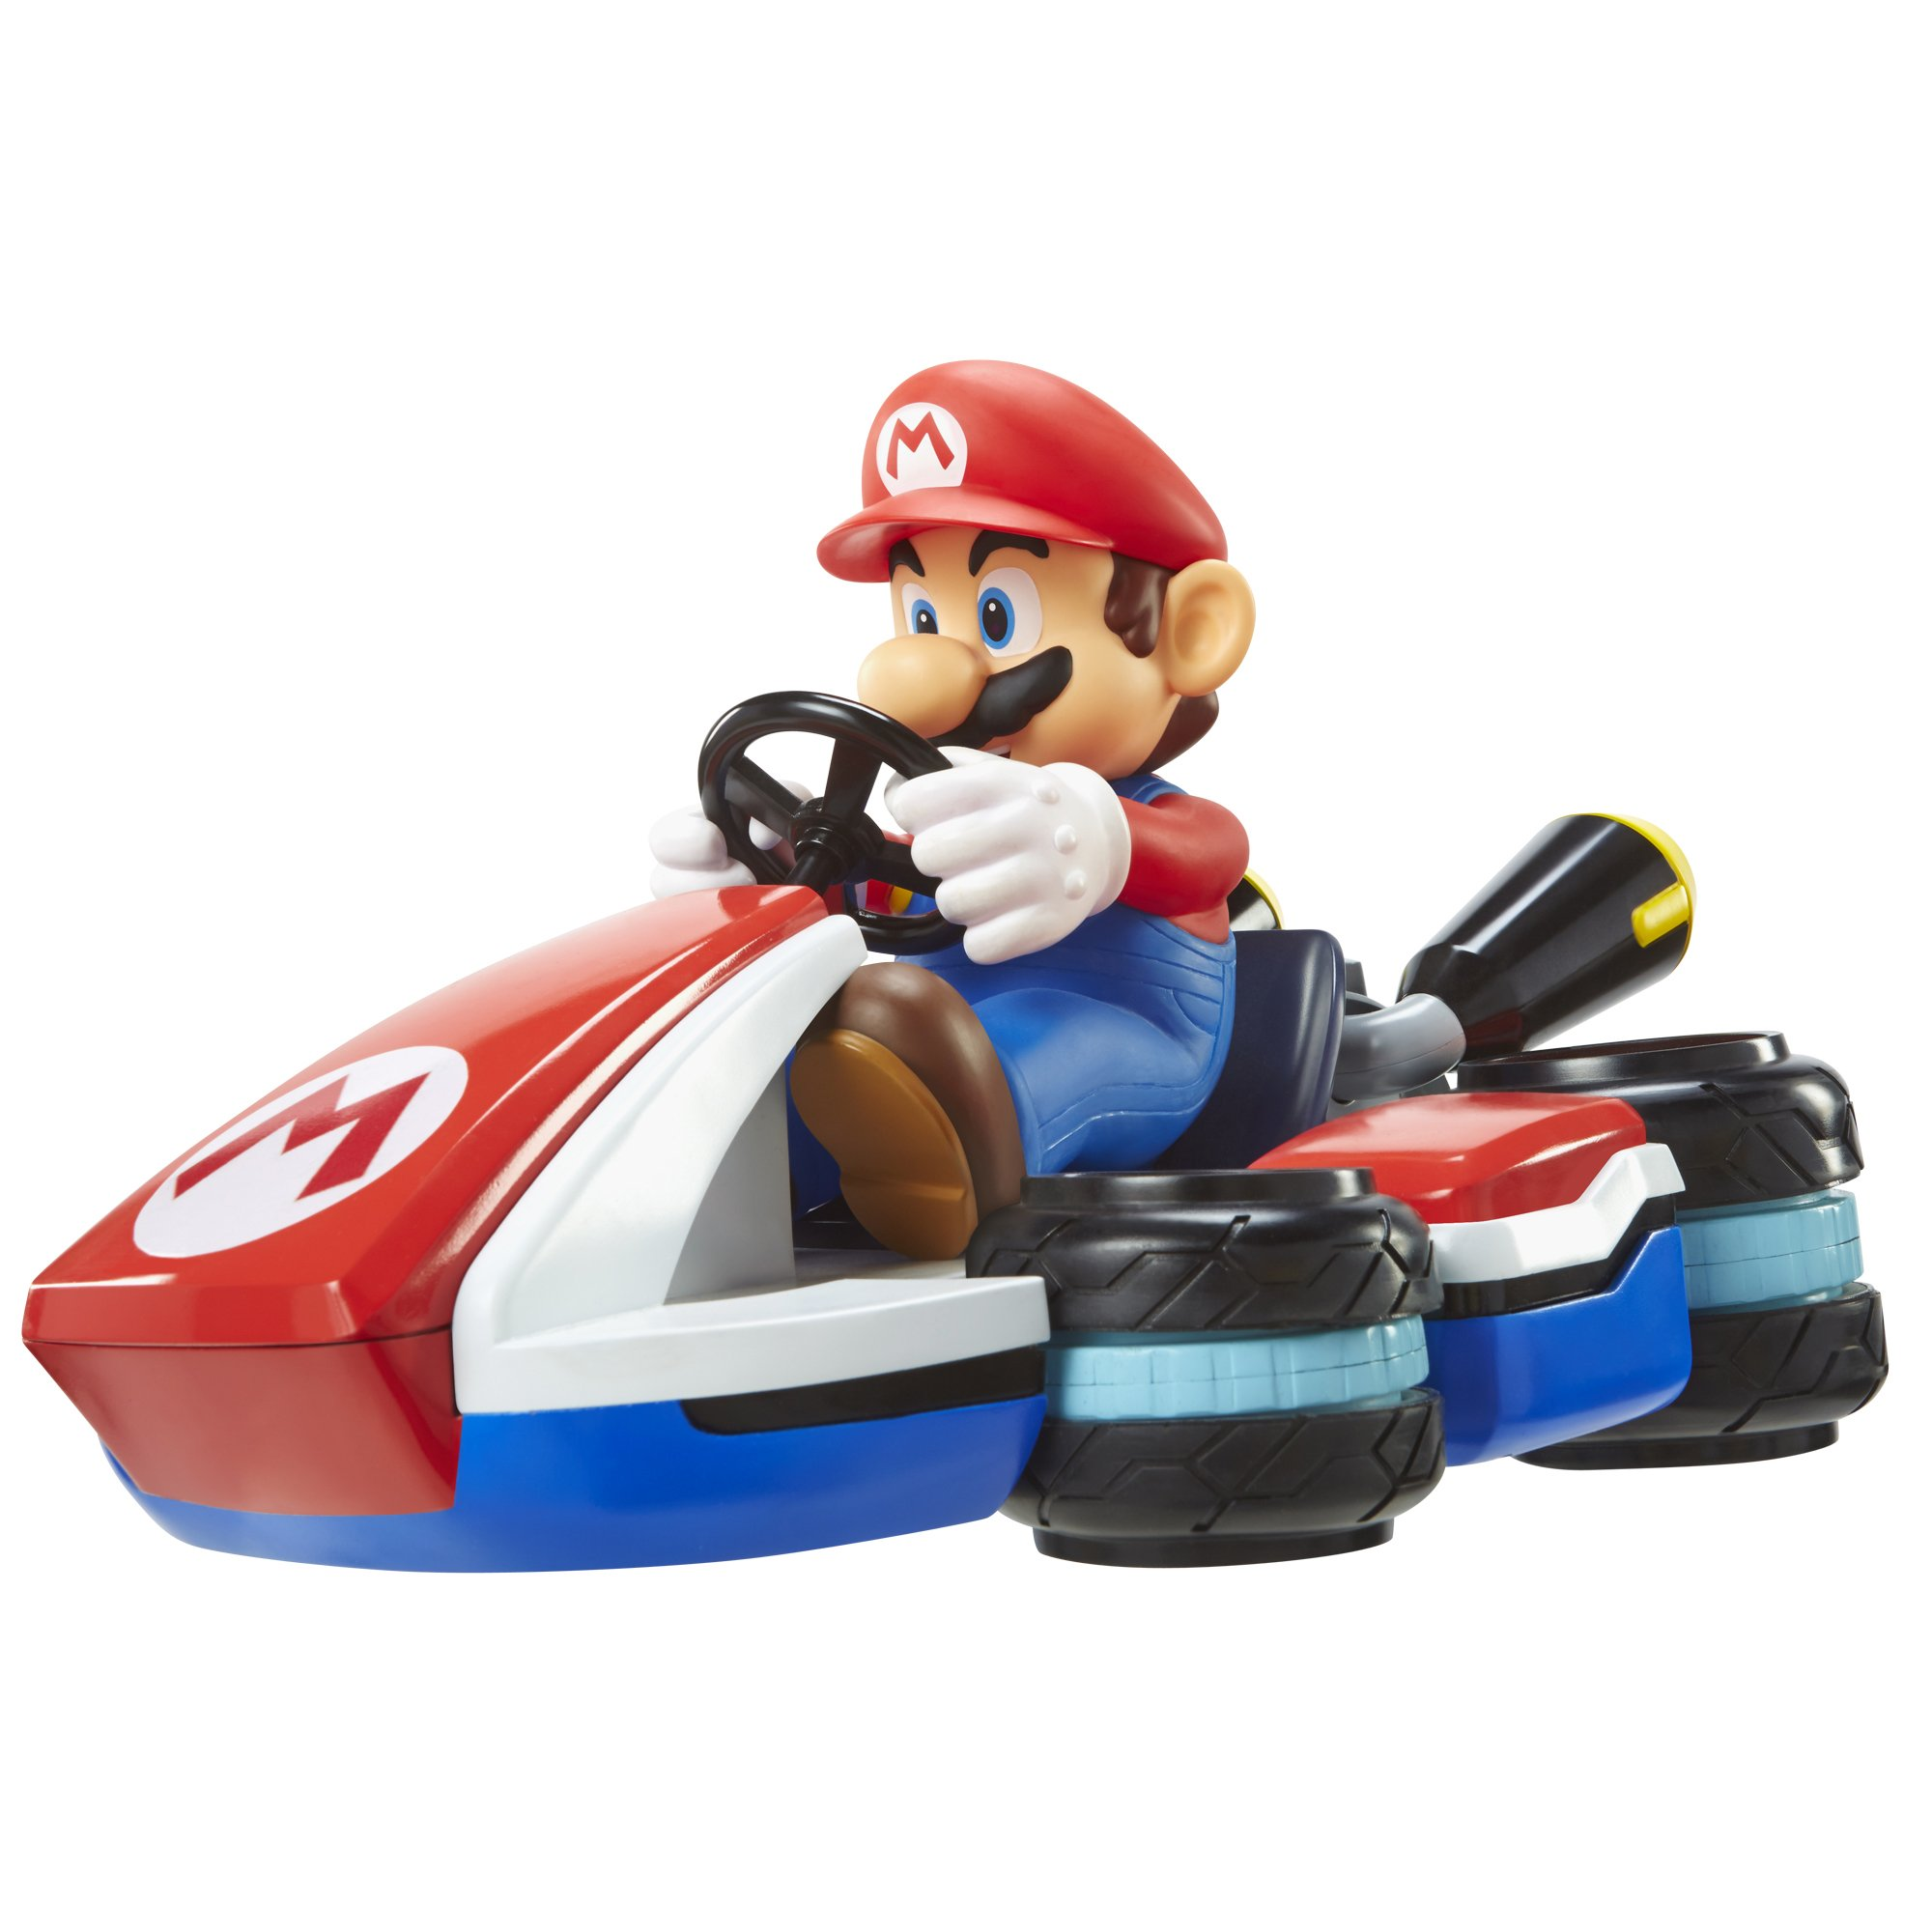 NINTENDO Super Mario Kart 8 Mario Anti-Gravity Mini RC Racer 2.4Ghz by Nintendo (Image #1)